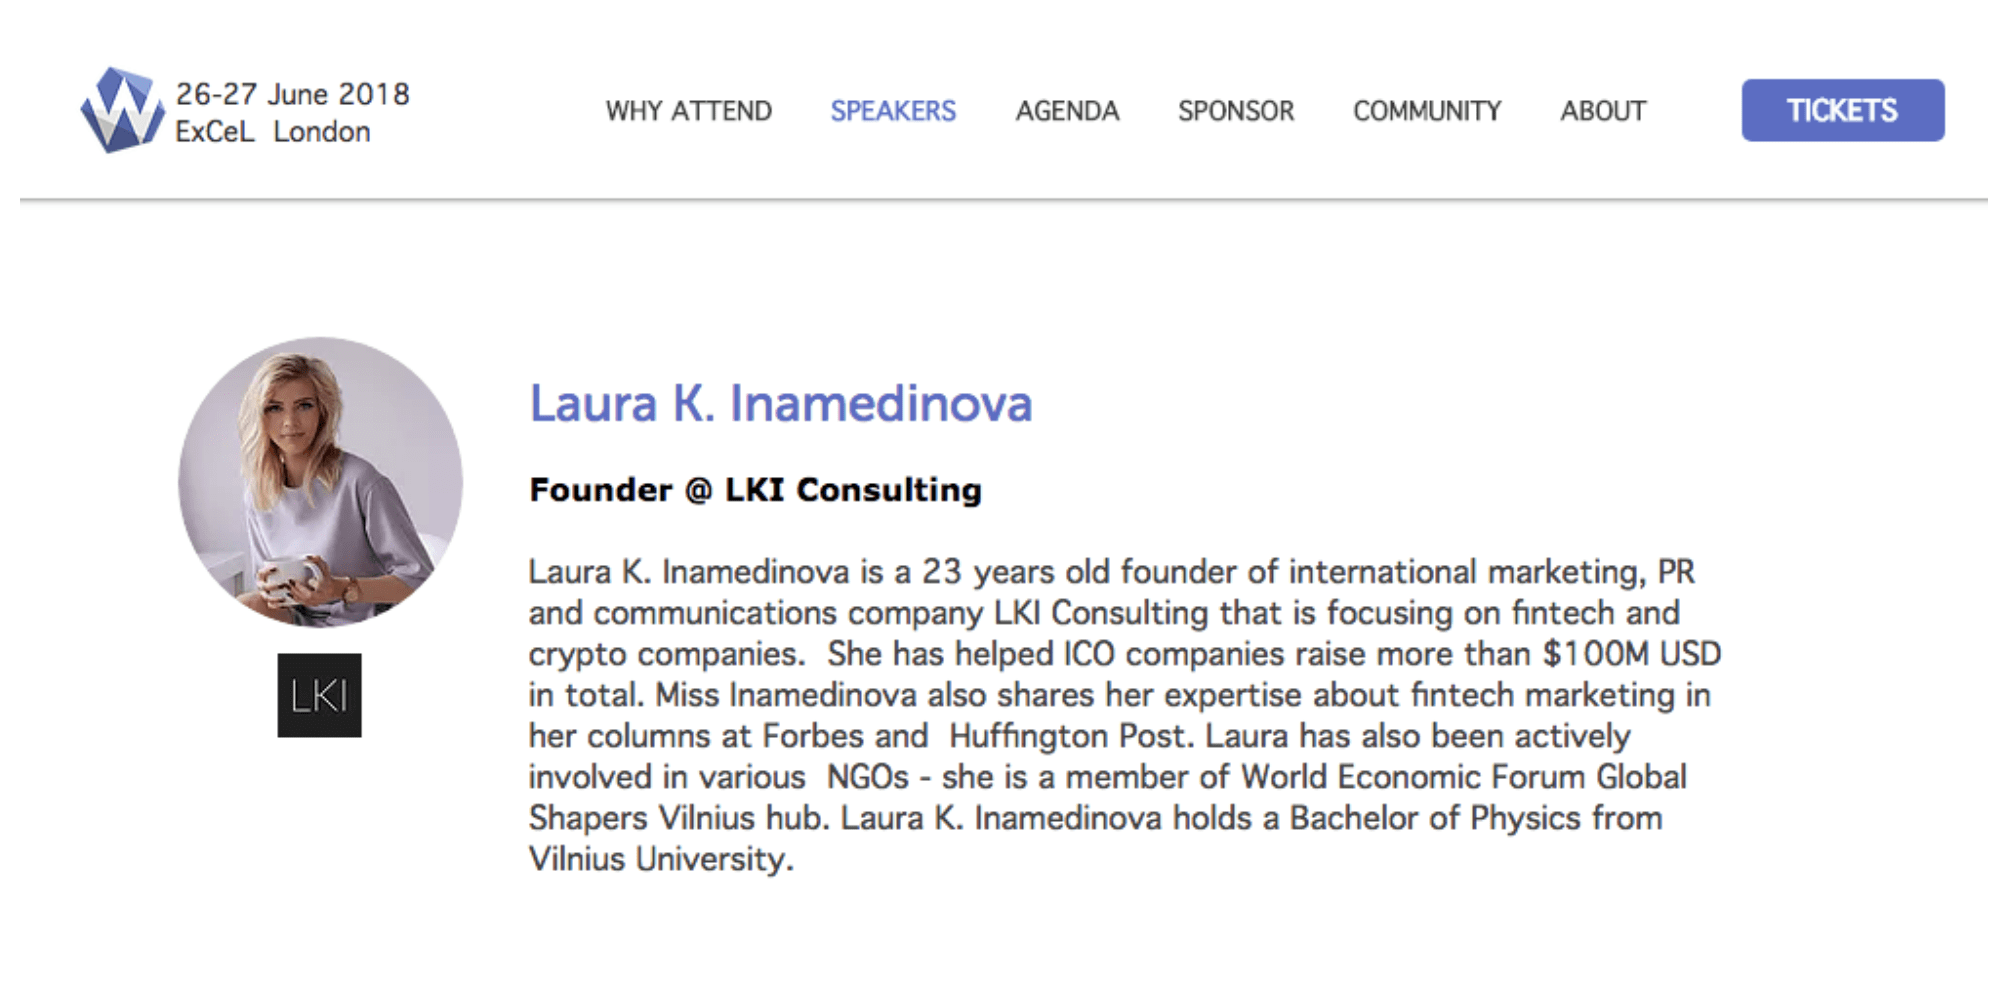 LKI Consulting founder, Laura K. Inamedinova, was invited to speak in Women of Silicon Roundabout